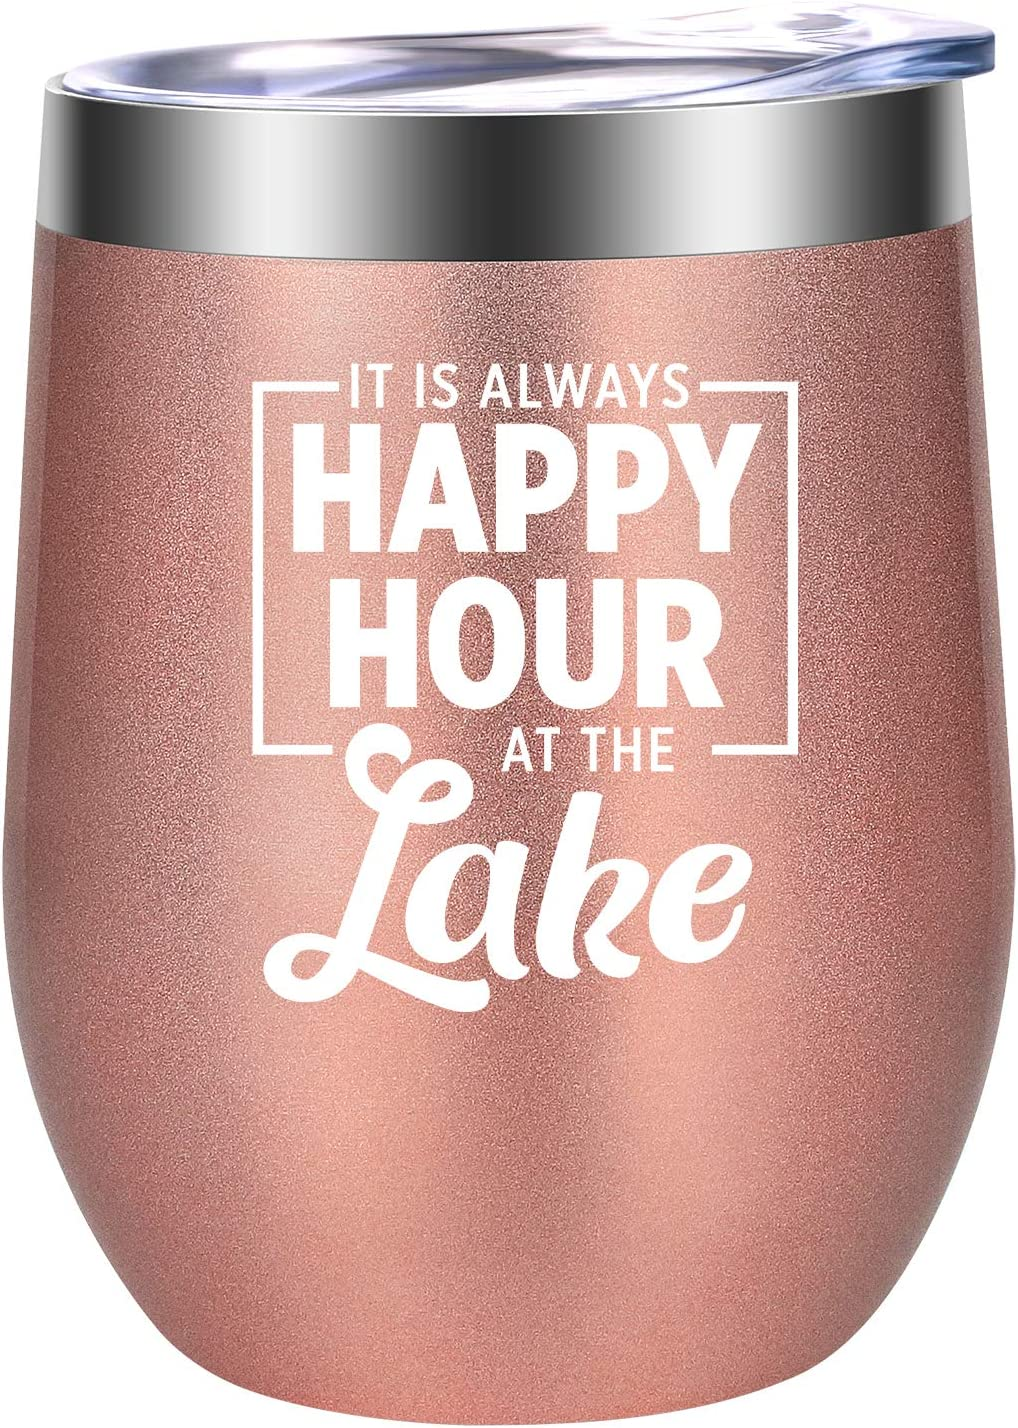 Lake House Gifts, Lake House Decor, It's Always Happy Hour at the Lake - Funny Birthday, Christmas Gifts for Women Lake Lovers, Best Friend, Wife, Mom, Grandma, Hostess - LEADO Lake Life Wine Tumbler